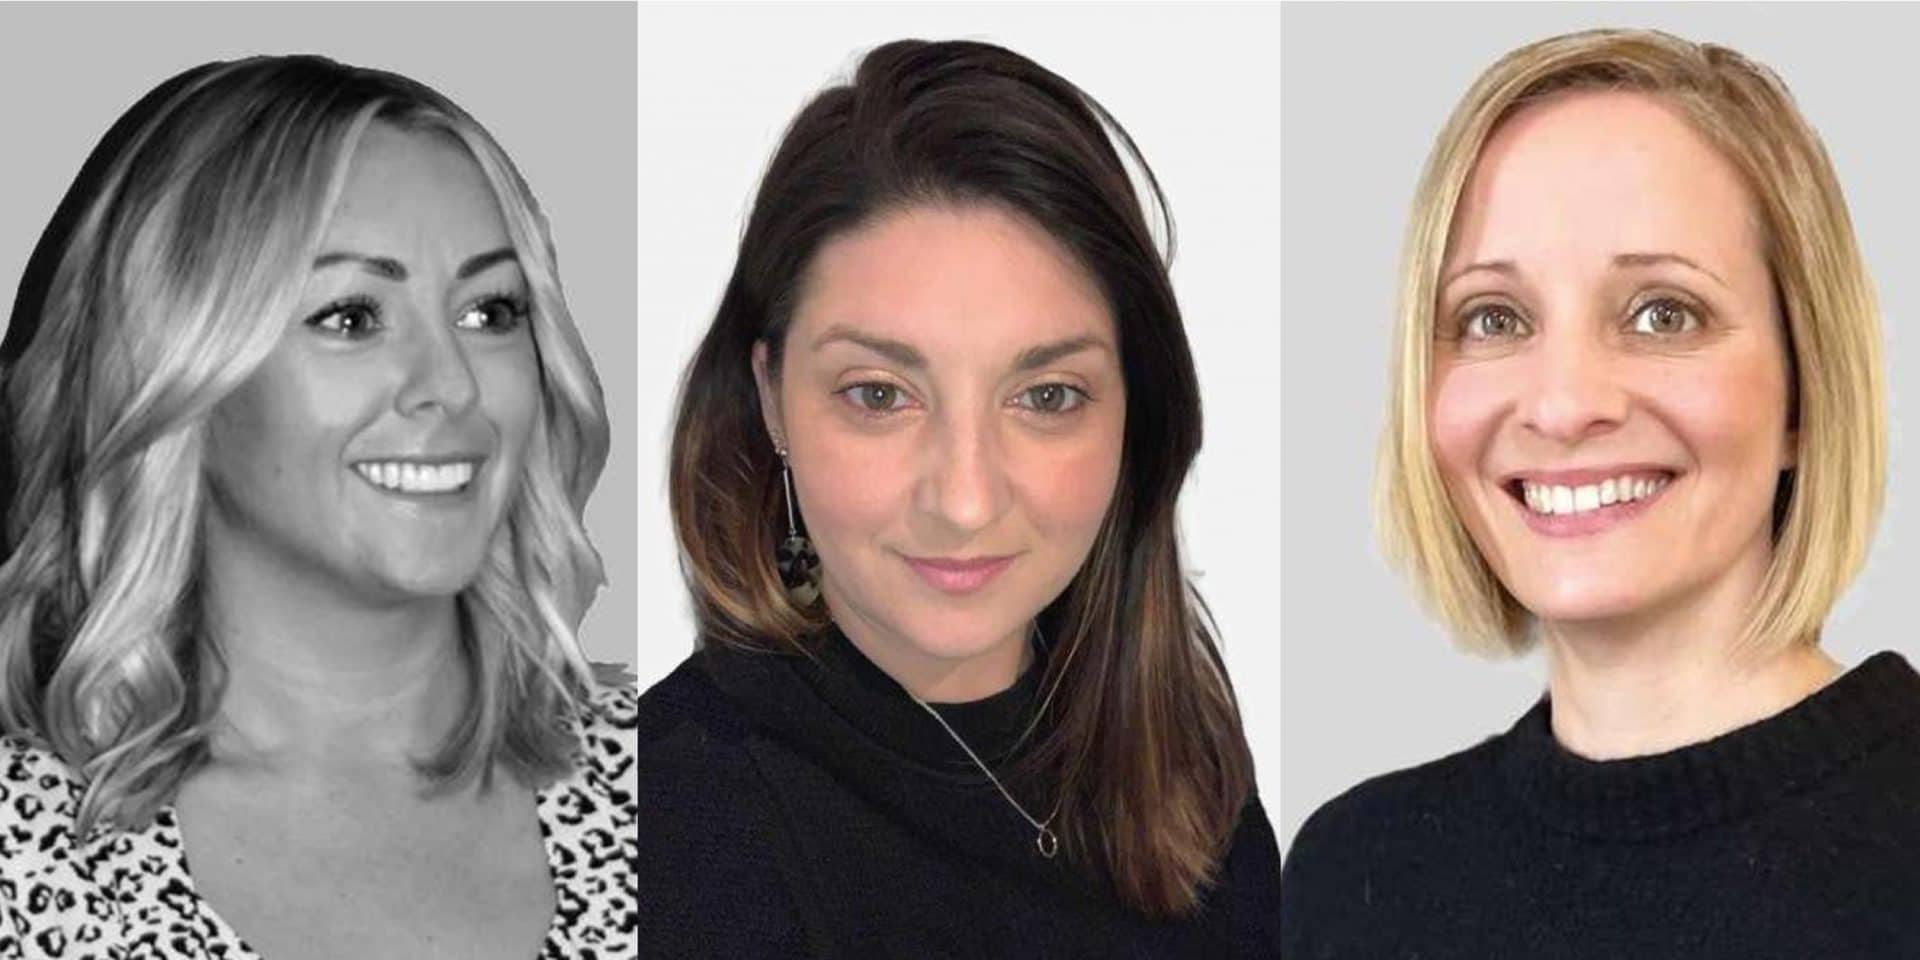 Co-op Live Announces First Senior Hires